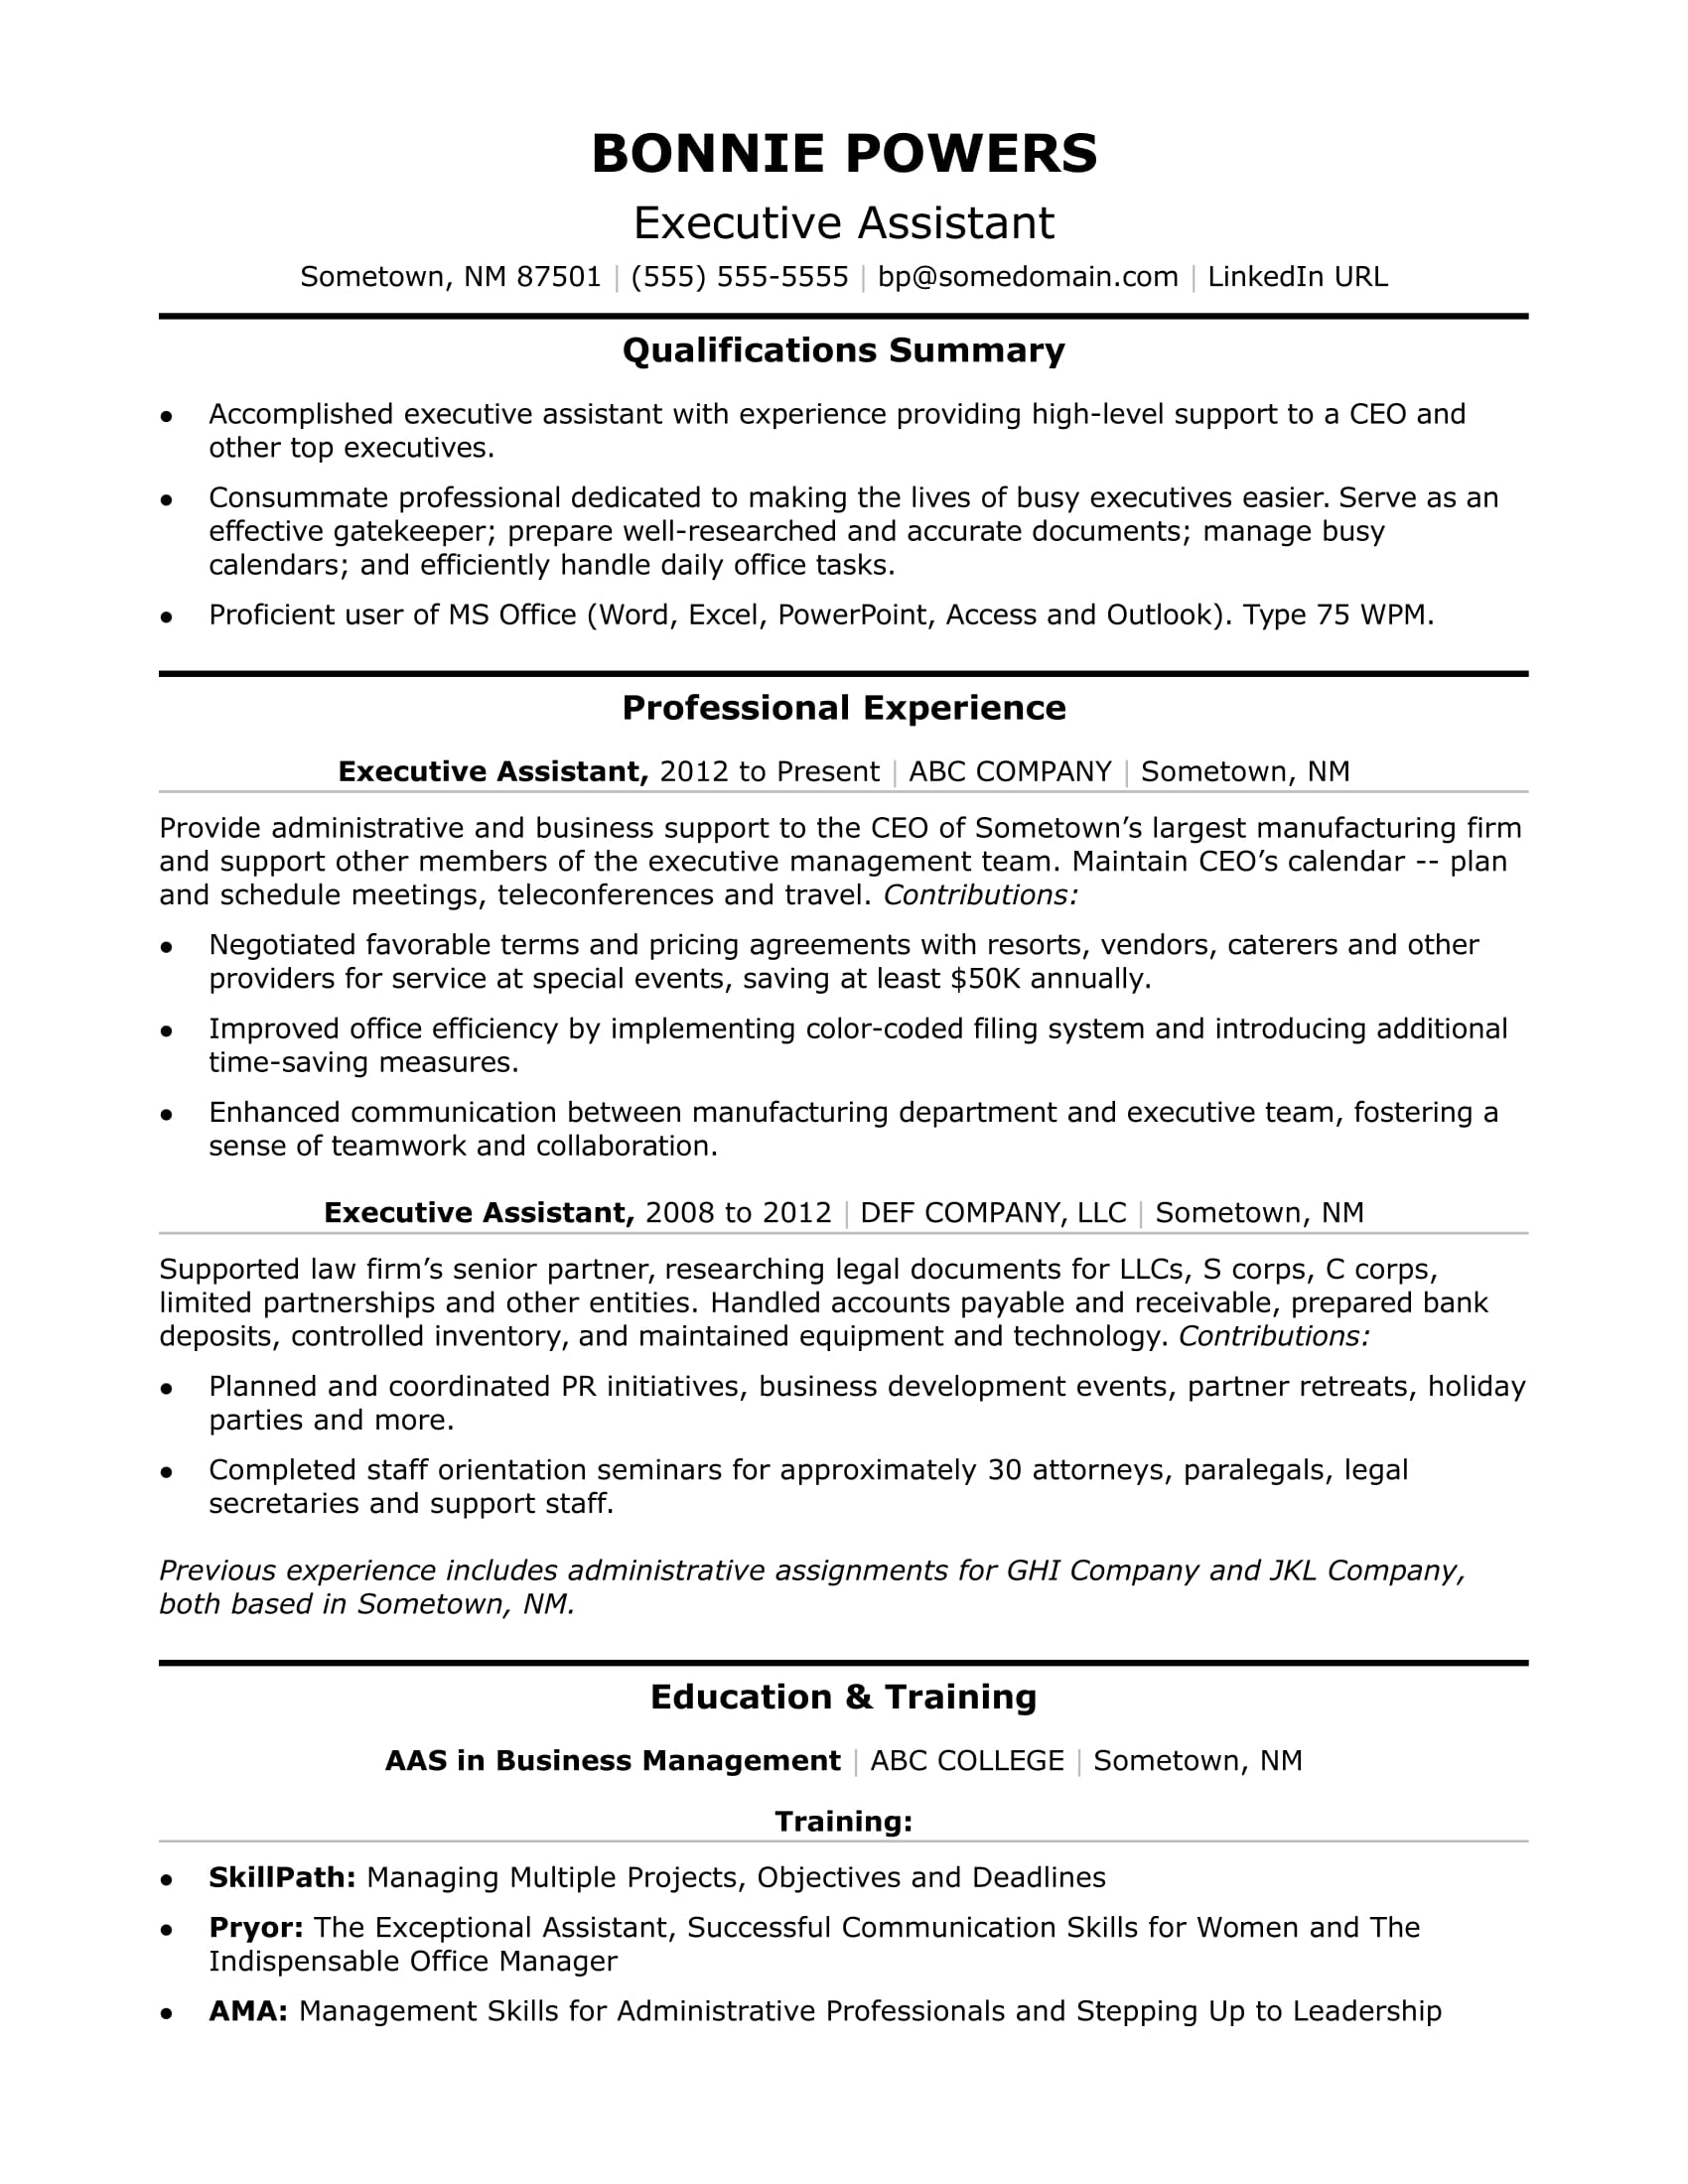 executive administrative assistant resume sample monster ceo template word free put on Resume Ceo Resume Template Word Free